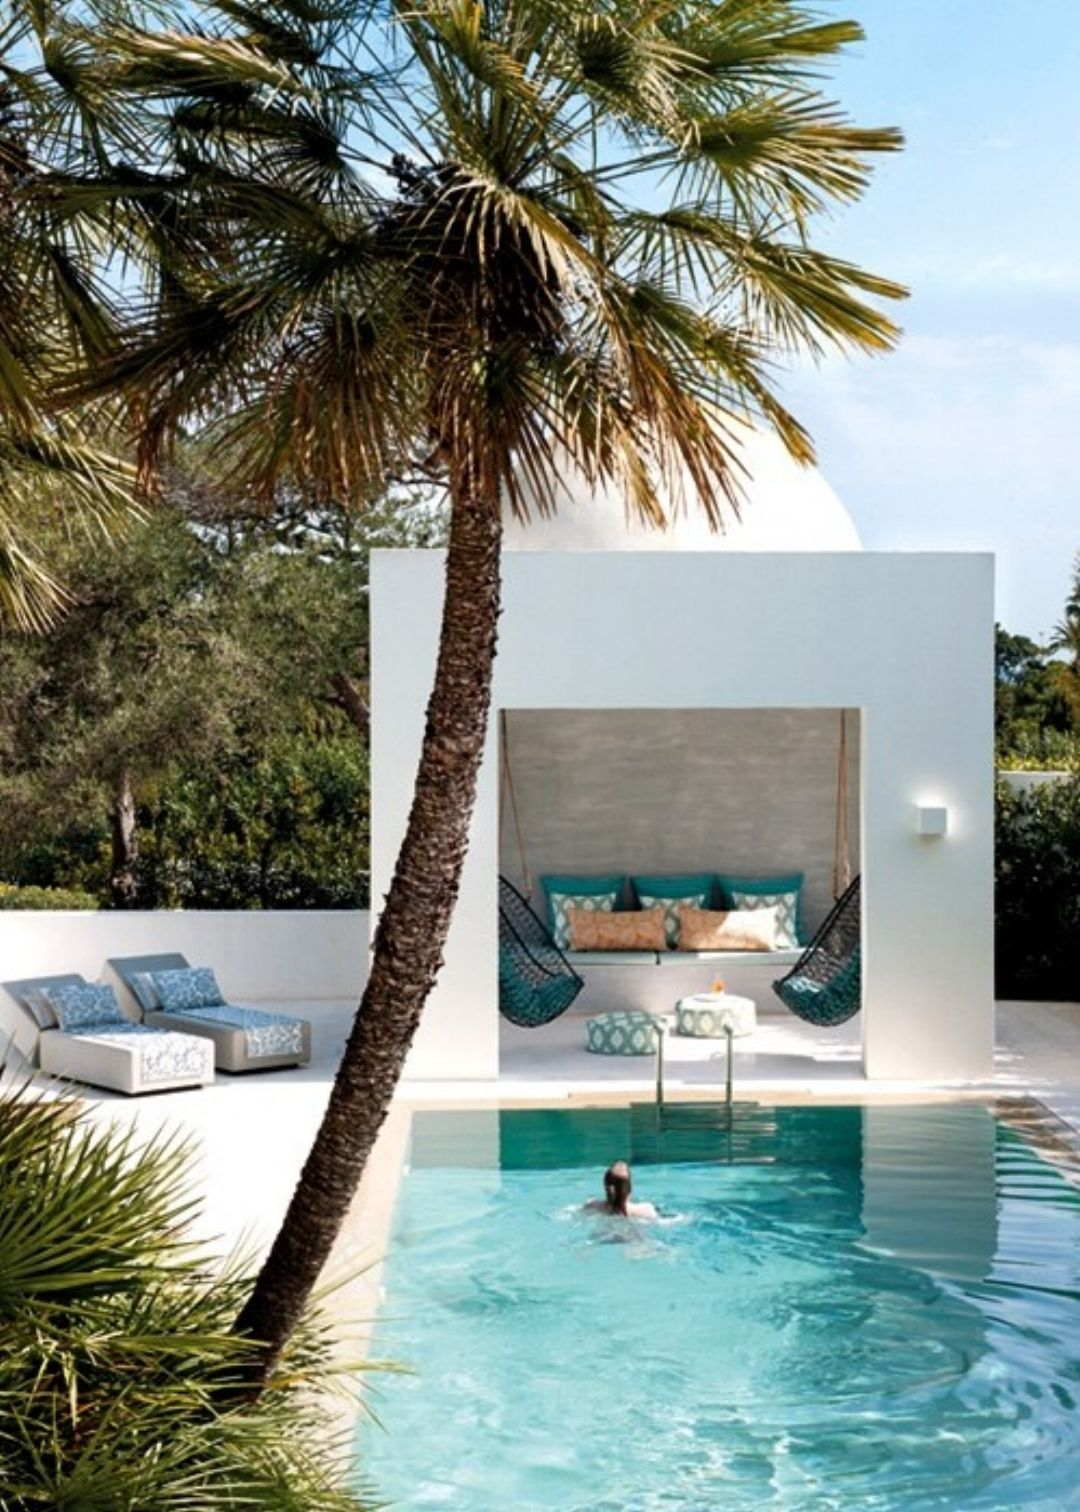 50 Stunning Outdoor Living Spaces Styleestate Dream Pools Pool Houses Pool House Backyard pool and pool house ideas